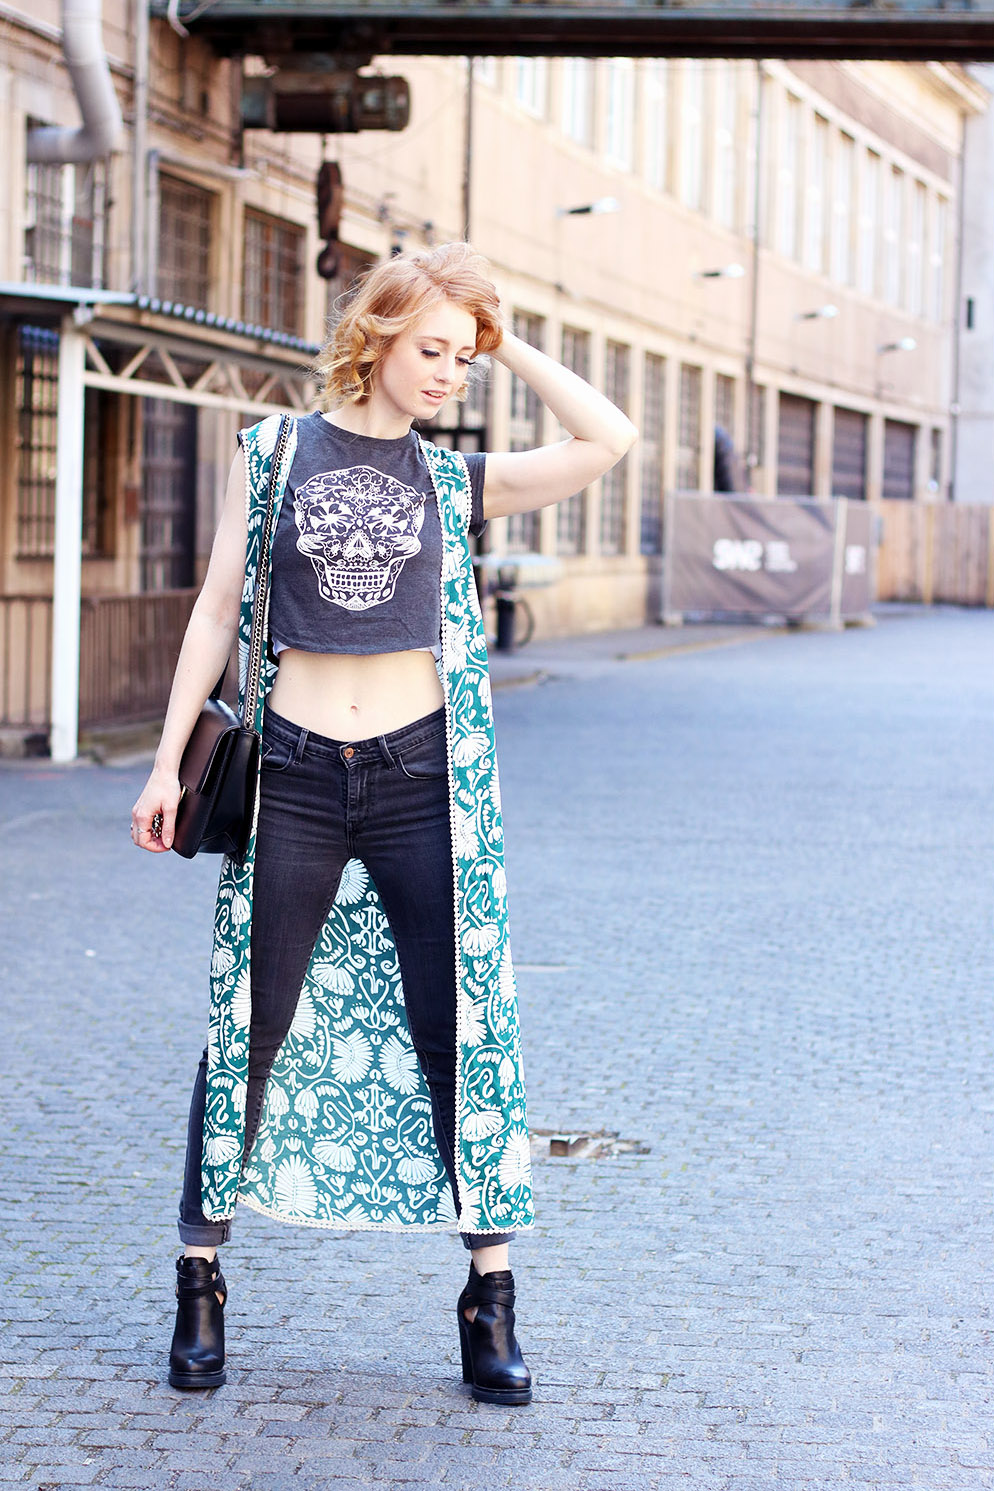 totenkopf, cropped Top, Sommer, Street Style Berlin, Outfit, Trend, Modetipps, Finde deinen Stil, Kiez, helle Haut, Influencer, Deutschland, Berlin, Streetstyle, Mode Blog, Modeblog, Advance Your Style, advanceyourstyle